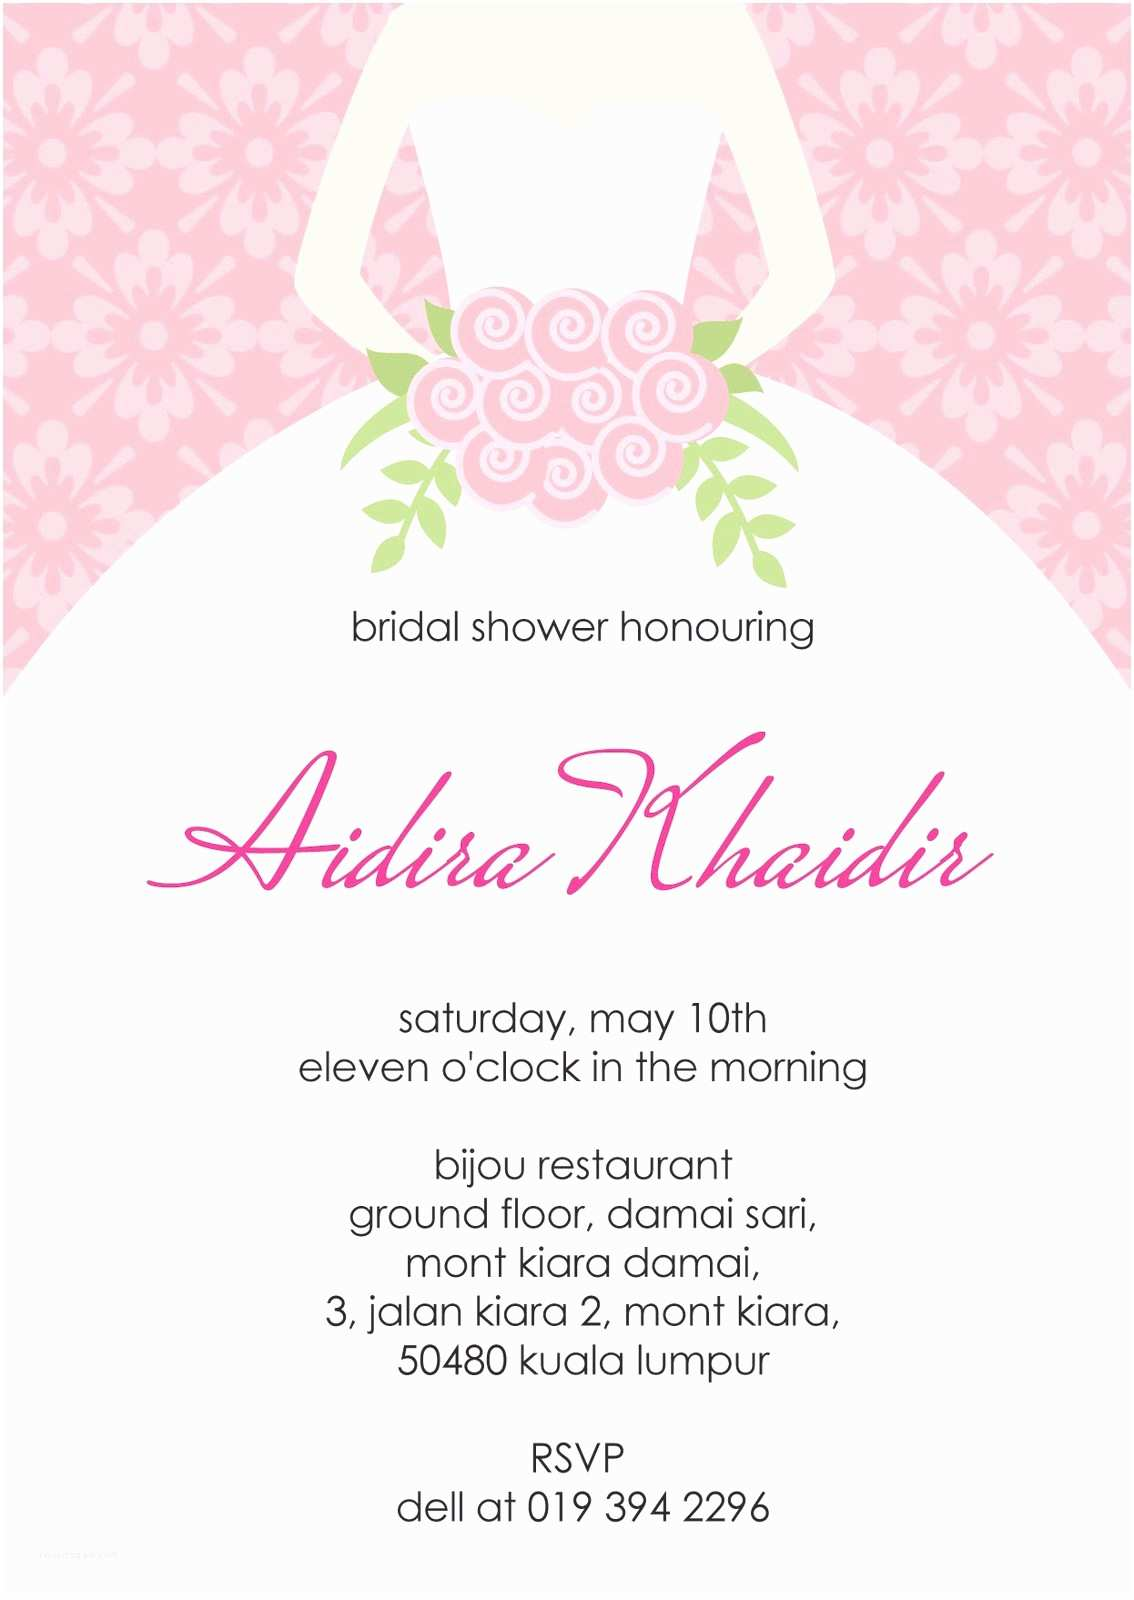 Vistaprint Wedding Shower Invitations Wedding Shower Invitations Vistaprint Bridal Shower